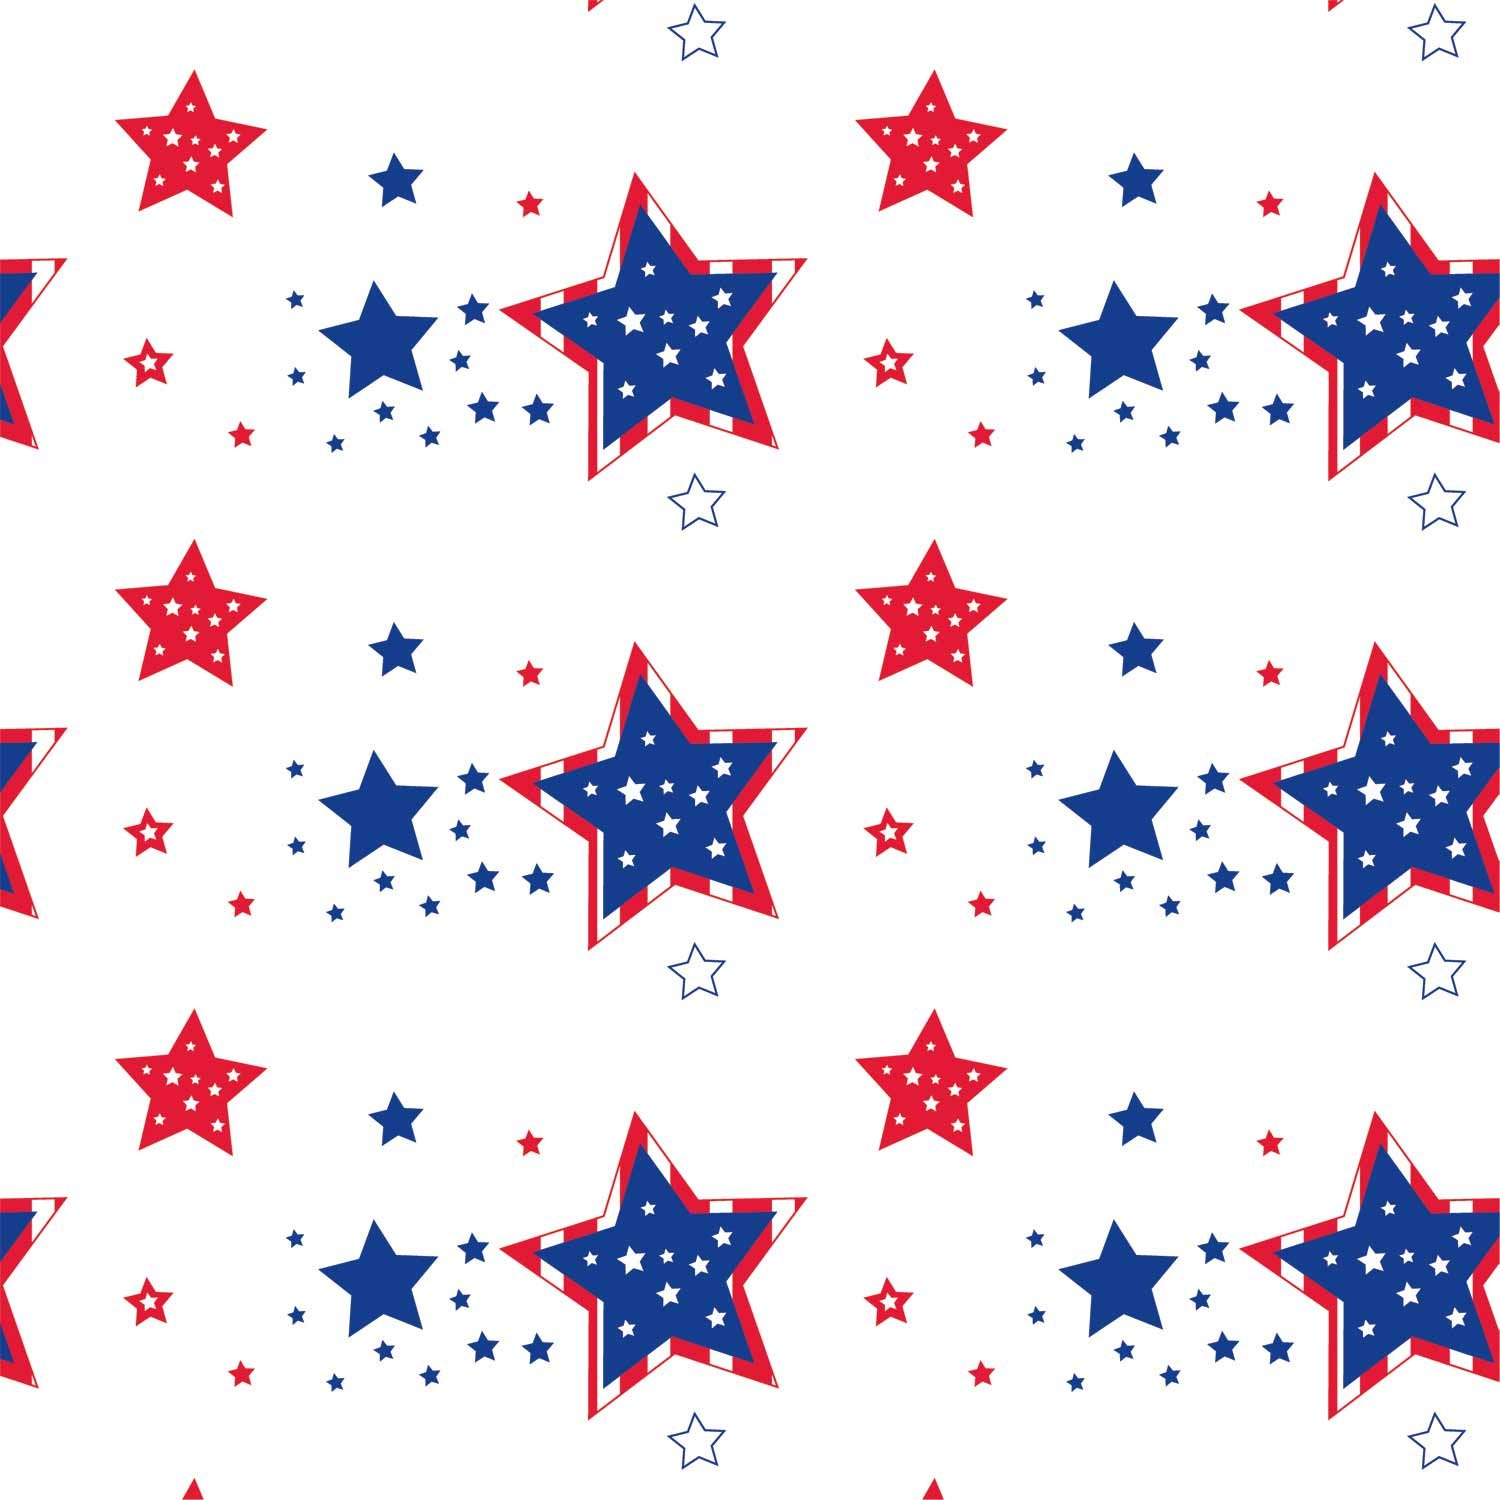 Party Essentials Heavy Duty Printed Plastic Table Cover Available in 44 Colors, 54'' x 108'', Patriotic Stars by Party Essentials